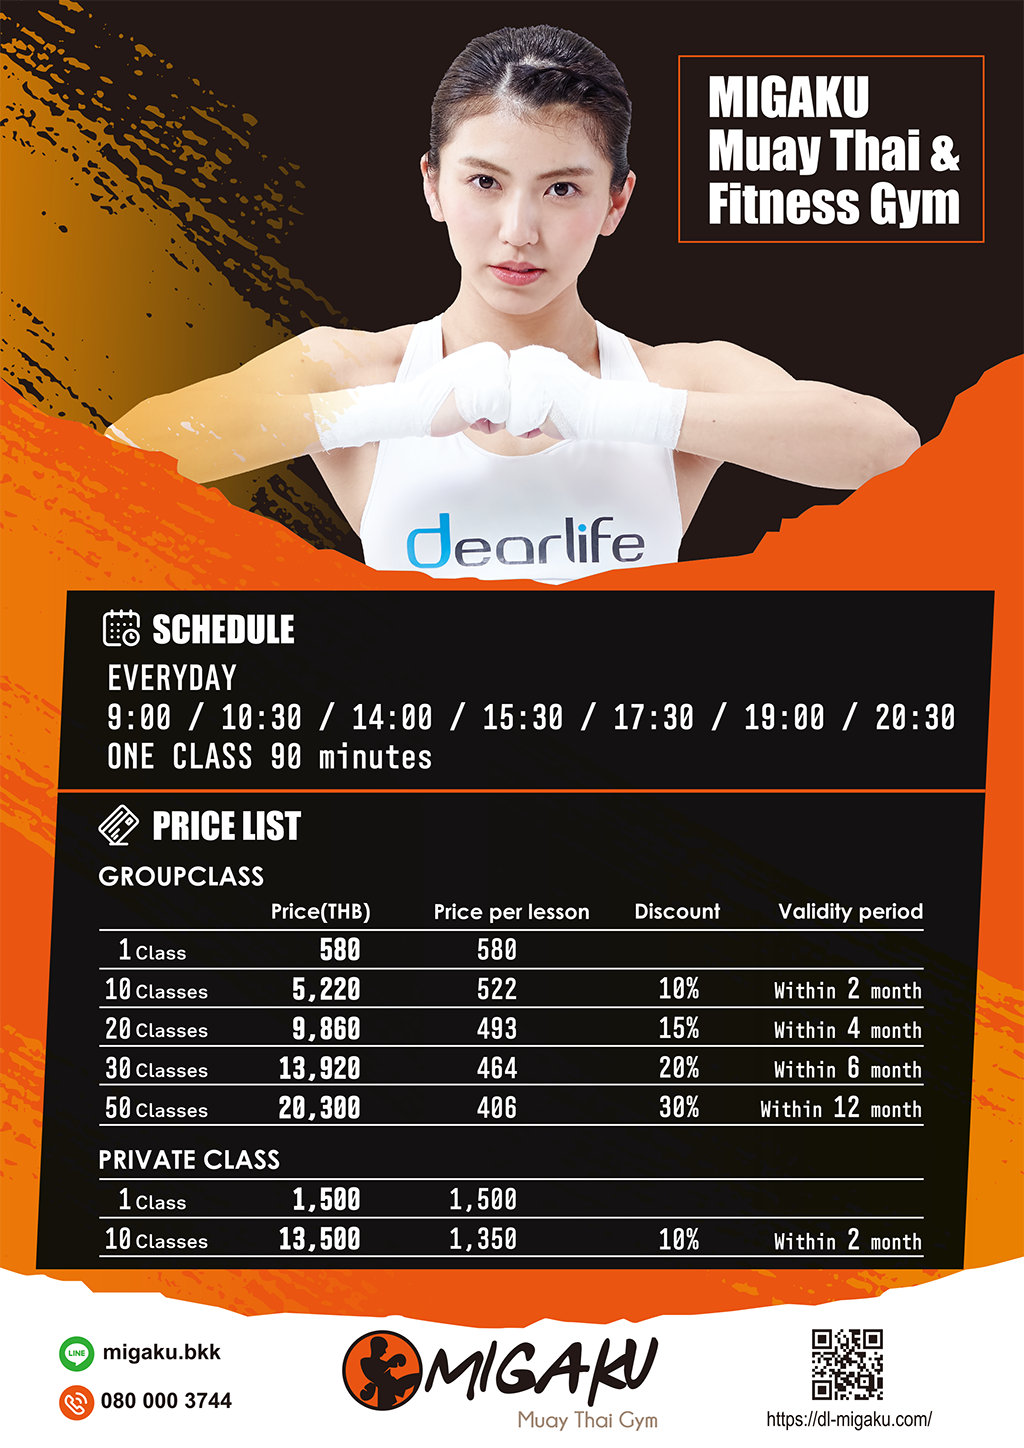 Migaku Muay Thai & Fitness Gym PRICE LIST